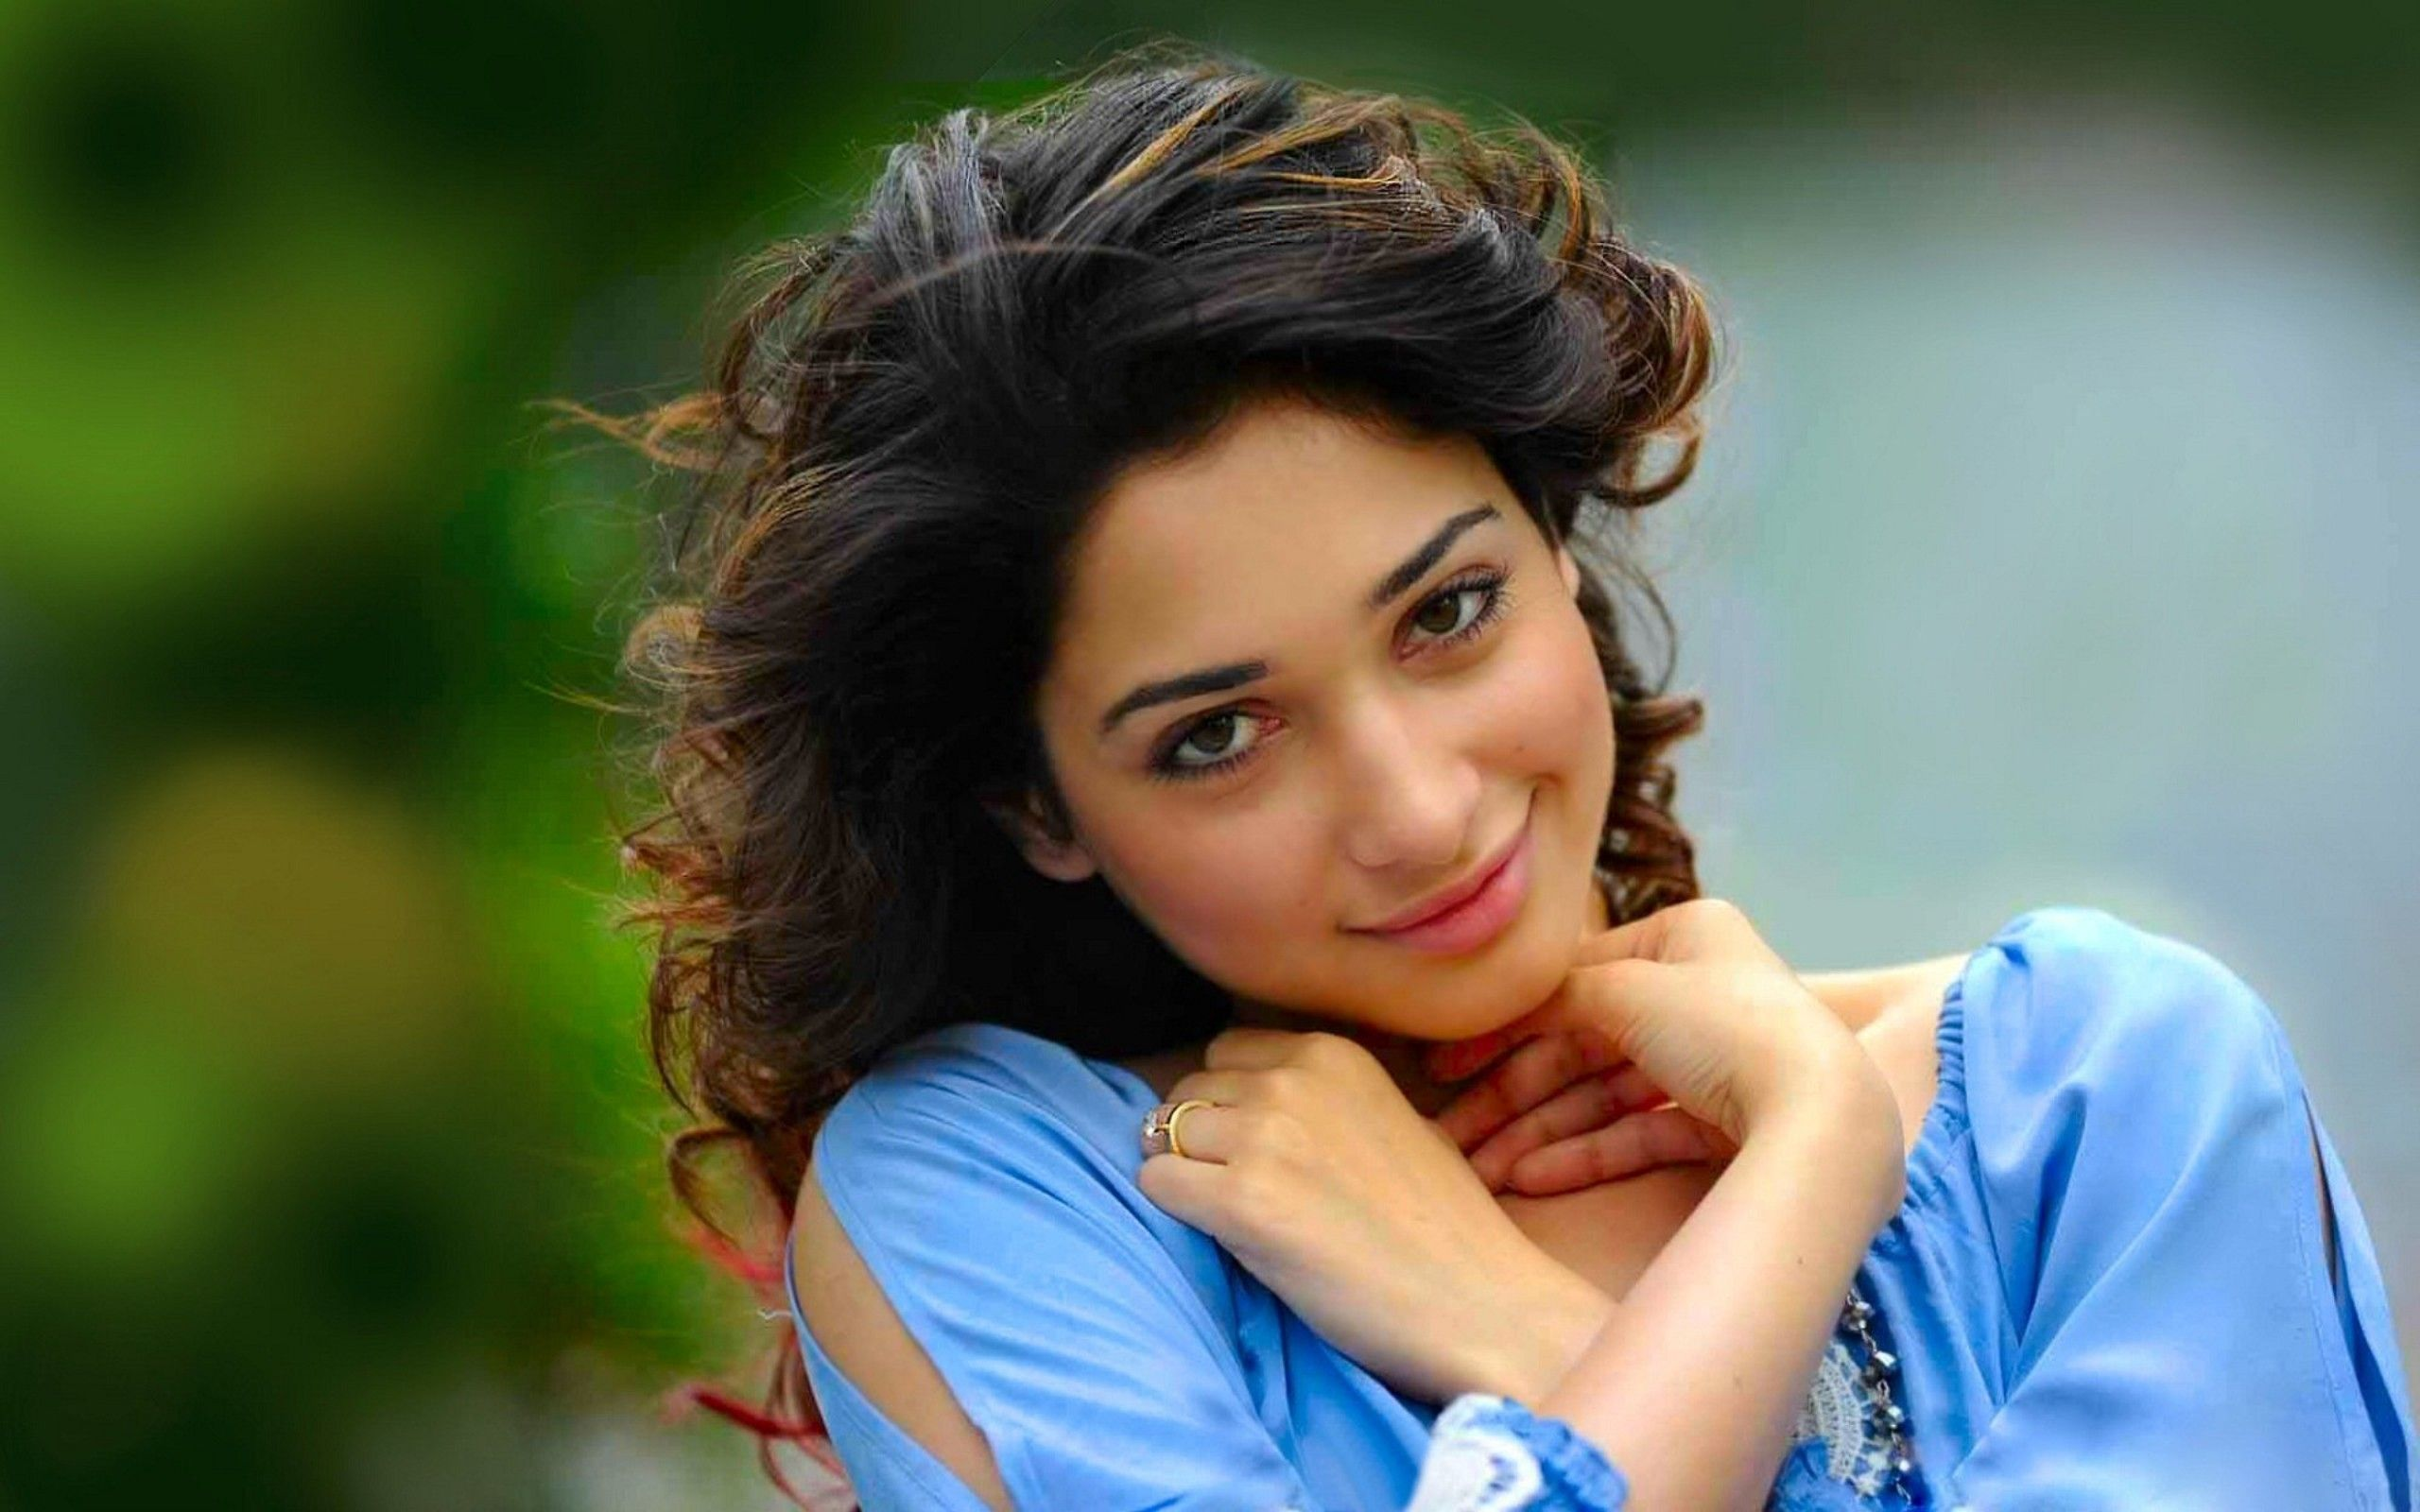 tamanna bhatia hot hd pictures images wallpapers | tamanna bhatia